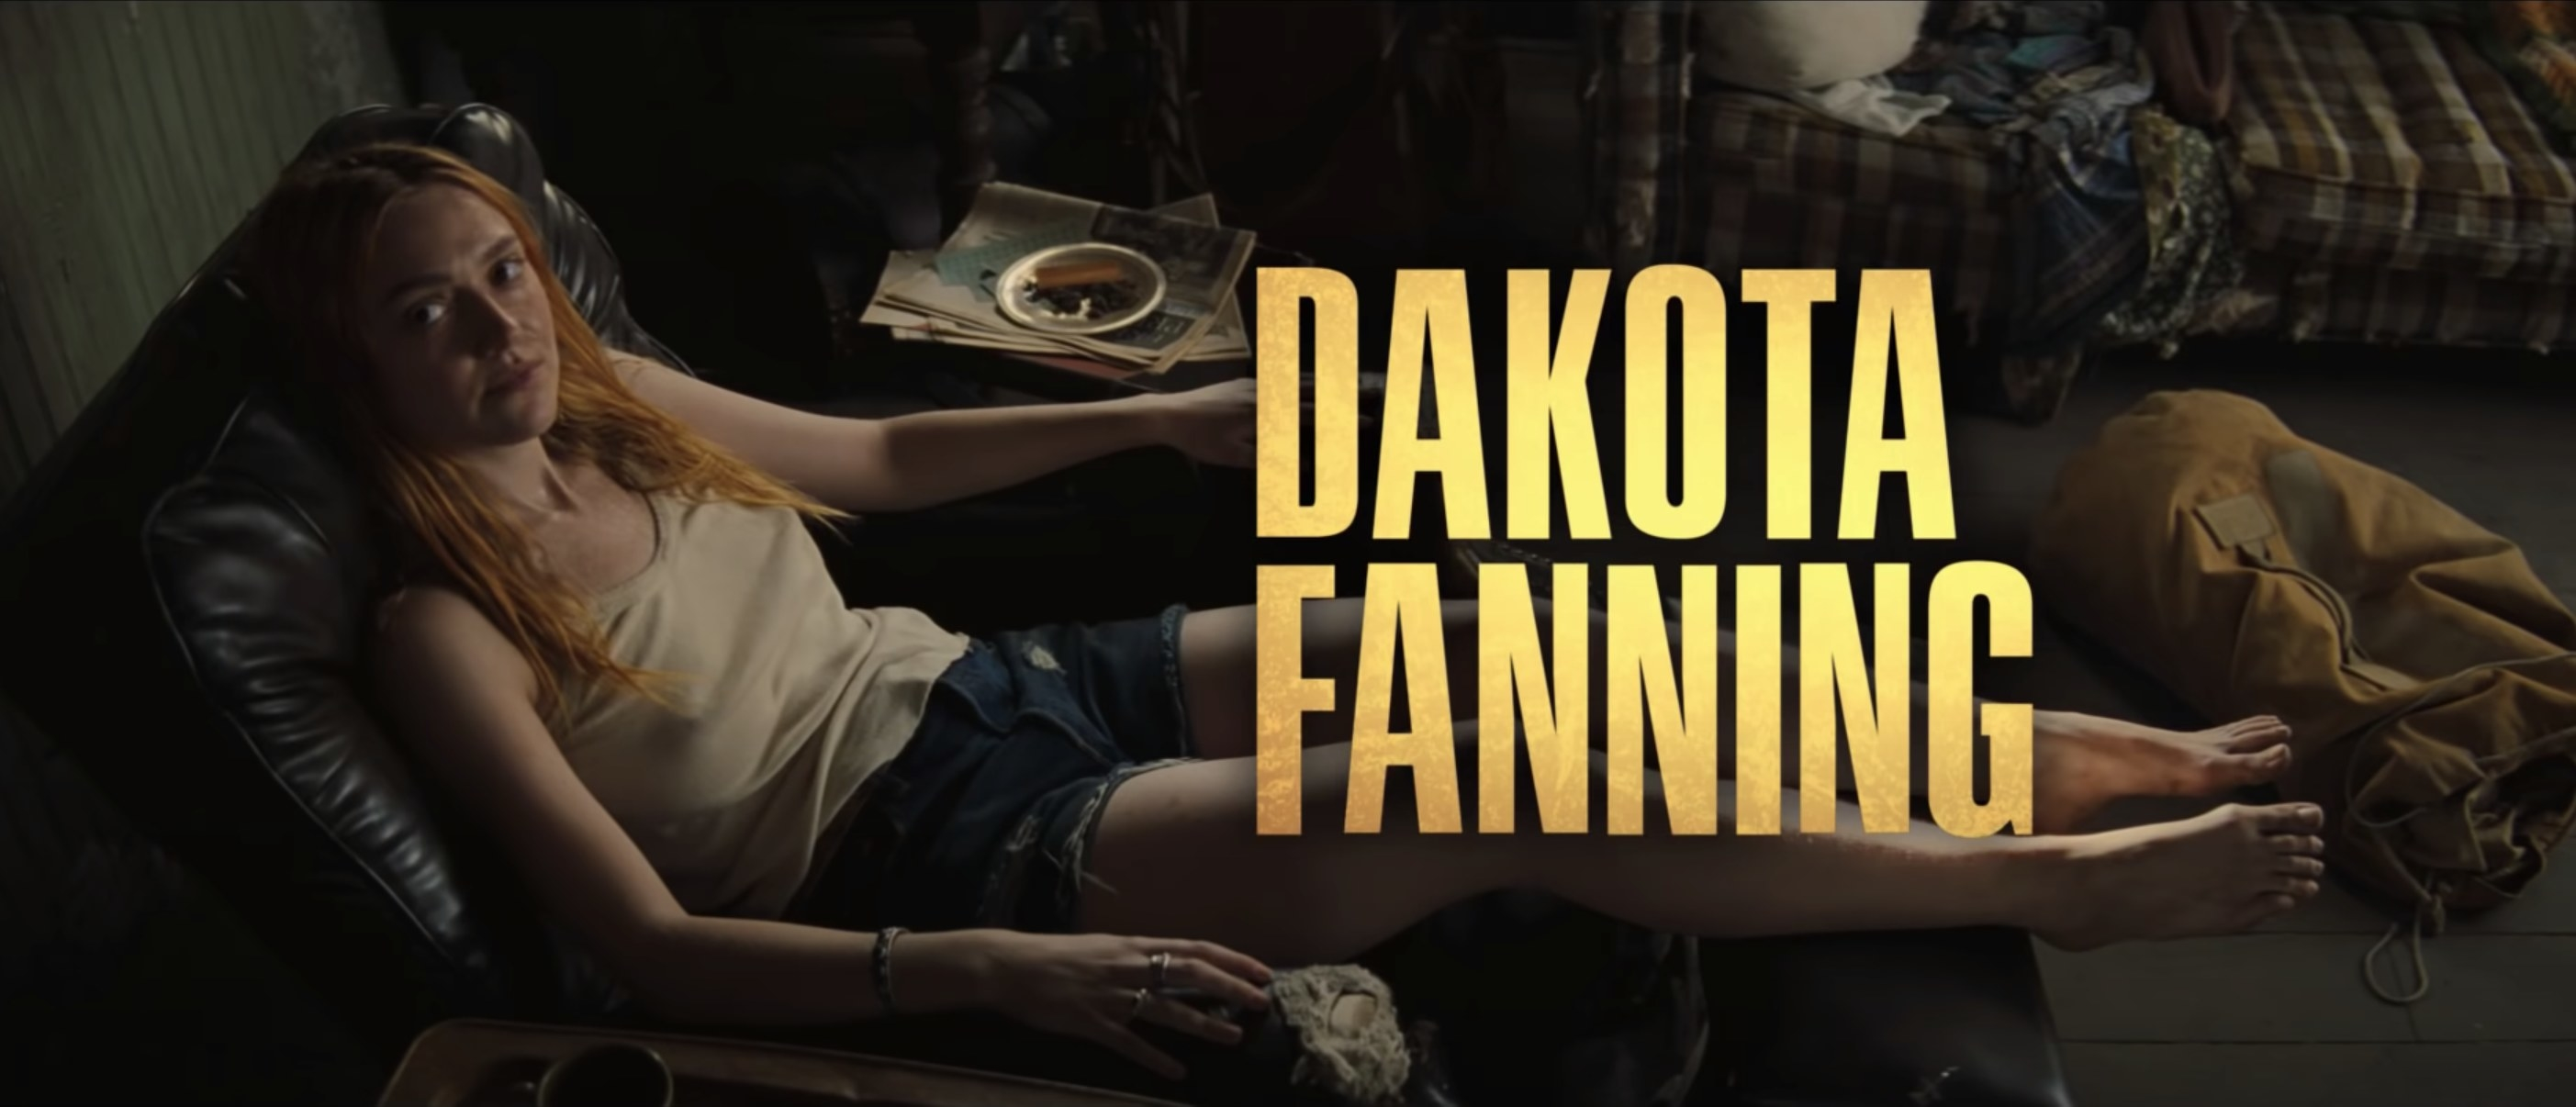 Dakota sits on a reclining chair in a screenshot from the movie